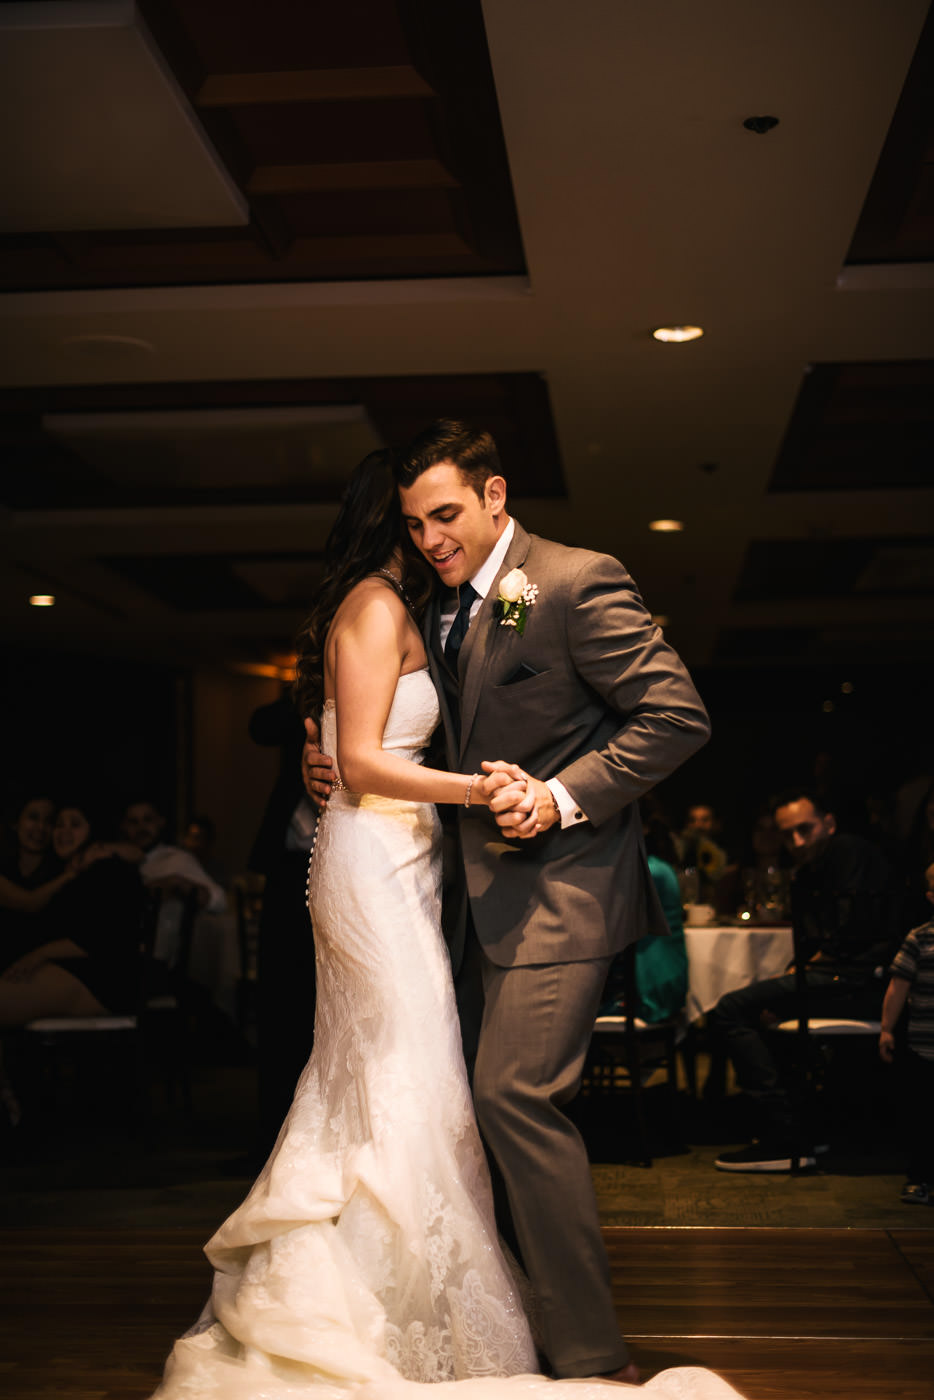 Couple has a little fun during their first dance.